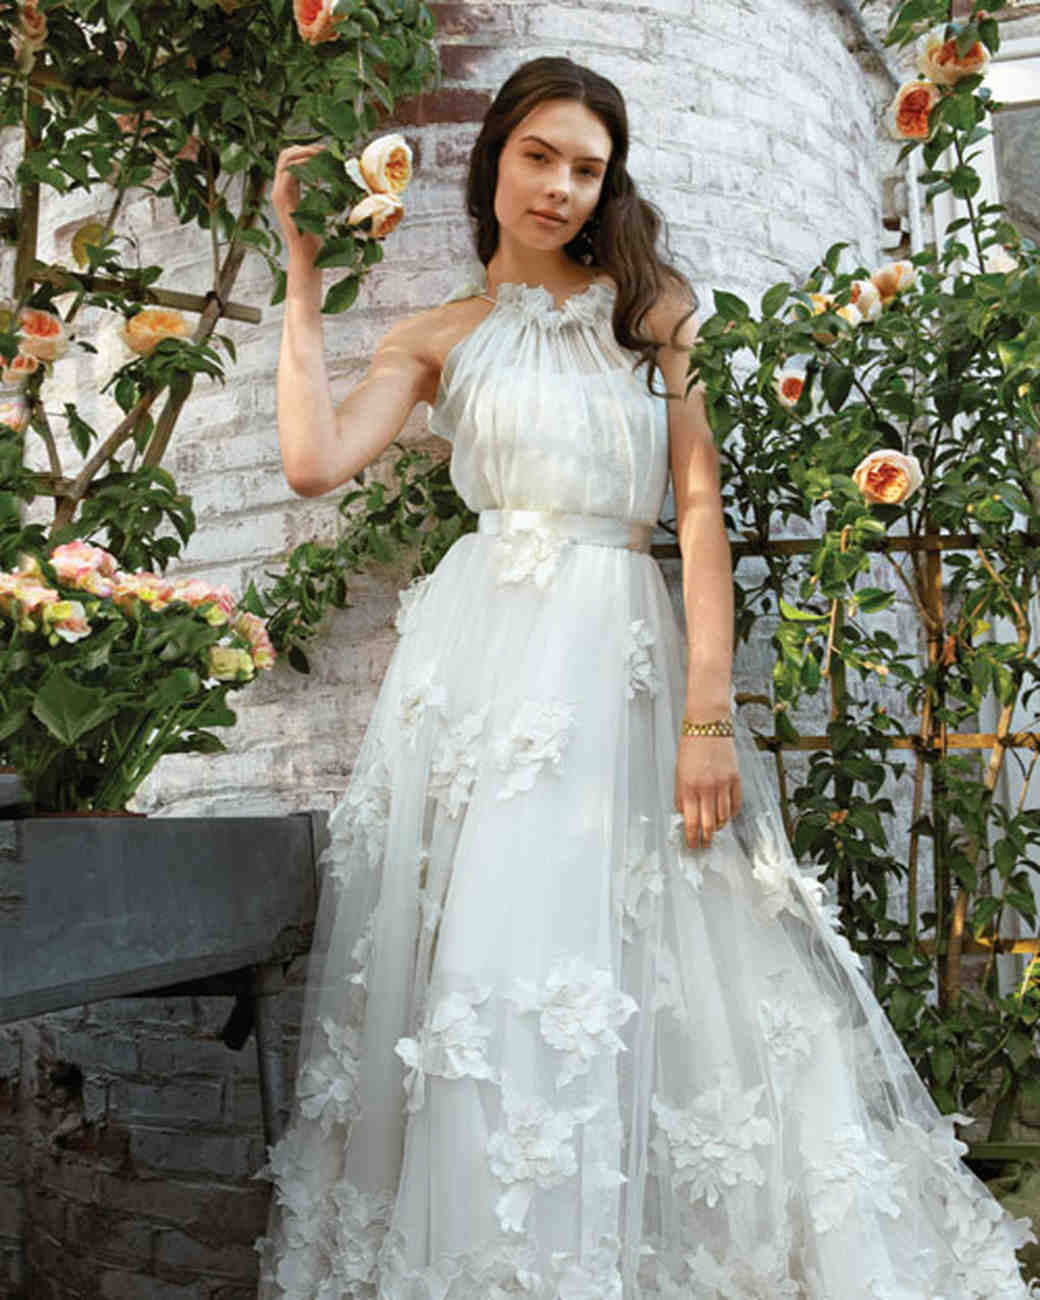 Dress Gowns For Weddings: Wedding Dresses Inspired By Flowers